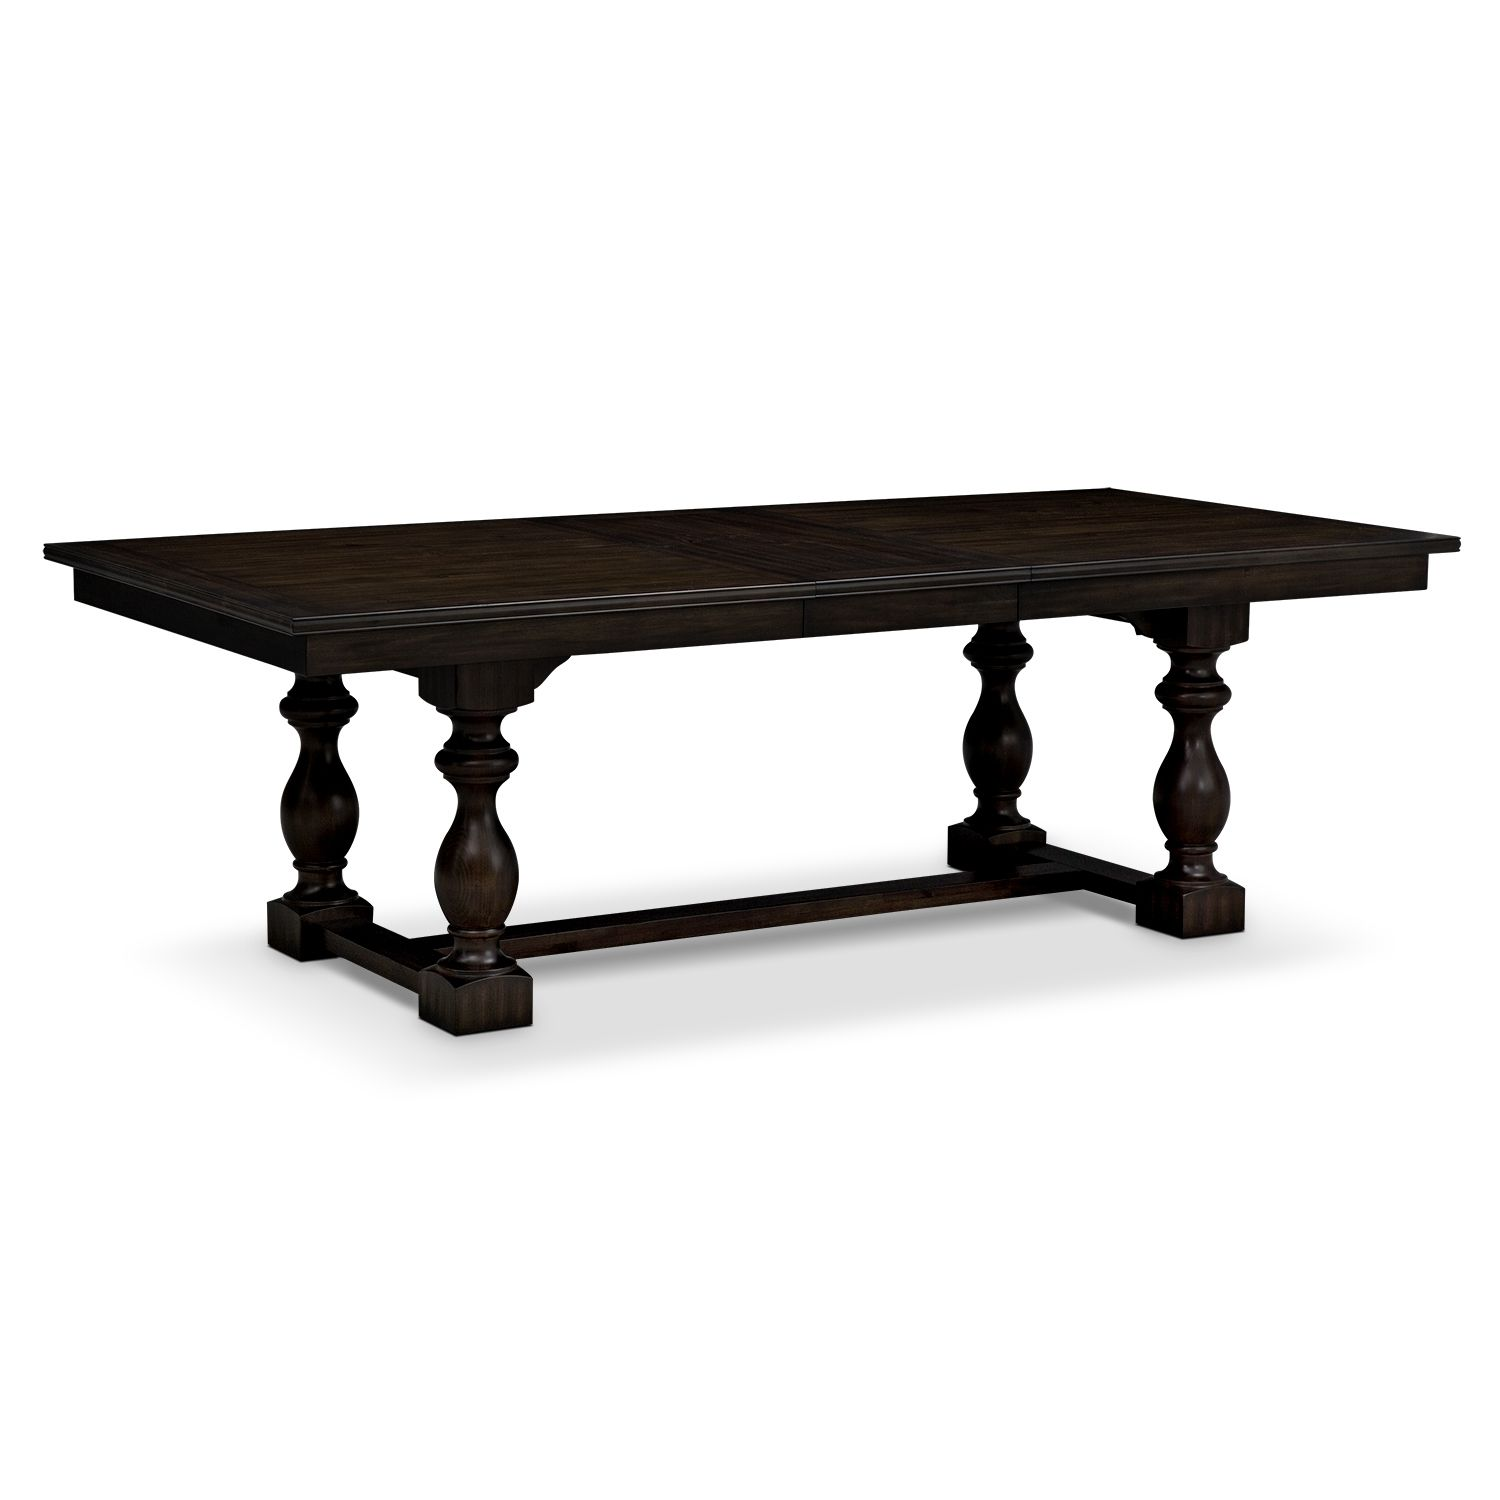 juliette dining room table | furniture | house ideas